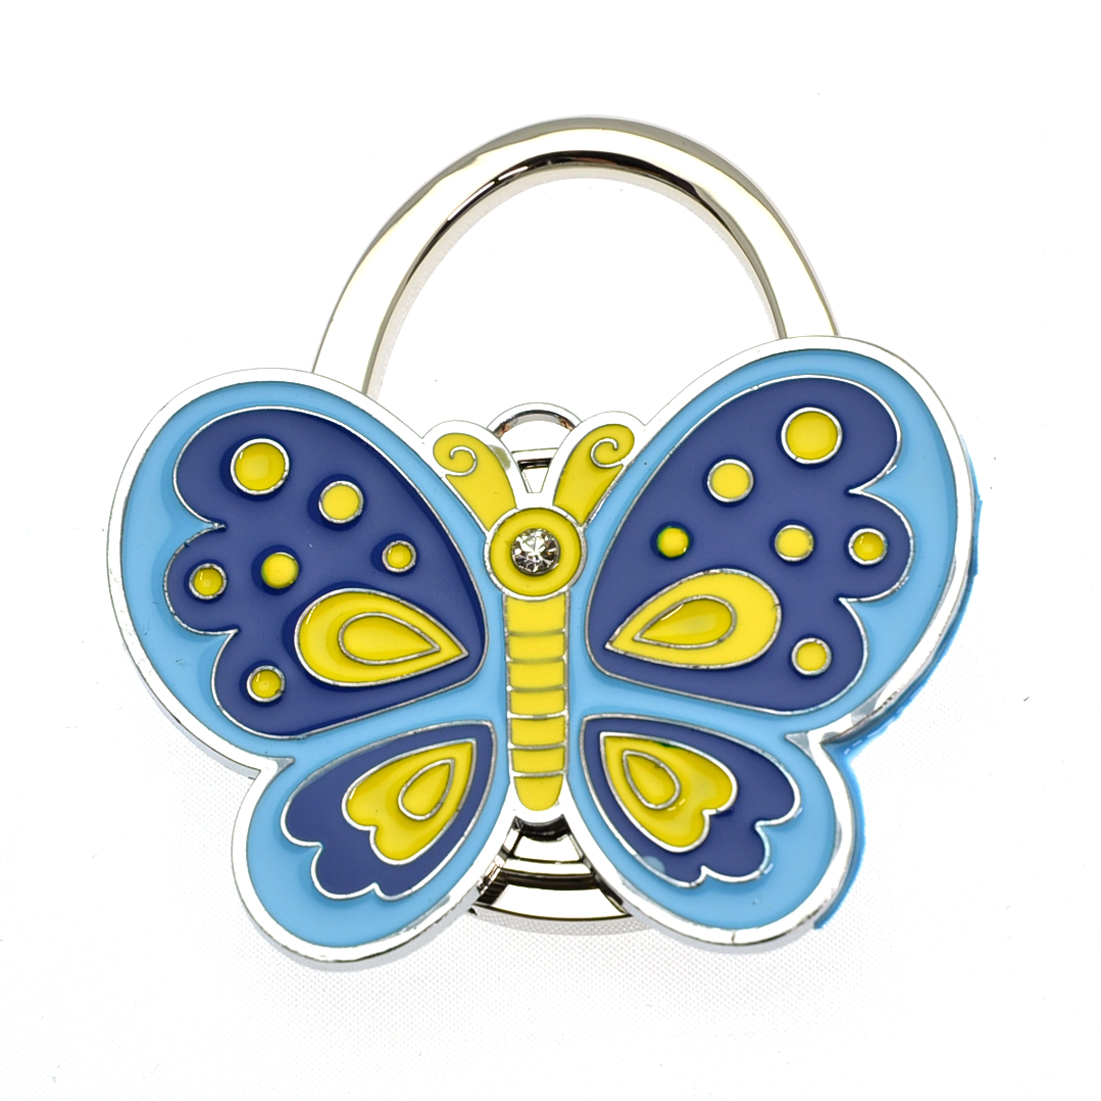 Embossed Metal Butterfly Shape Handbag Bag Purse Hanger Hook Table Holder